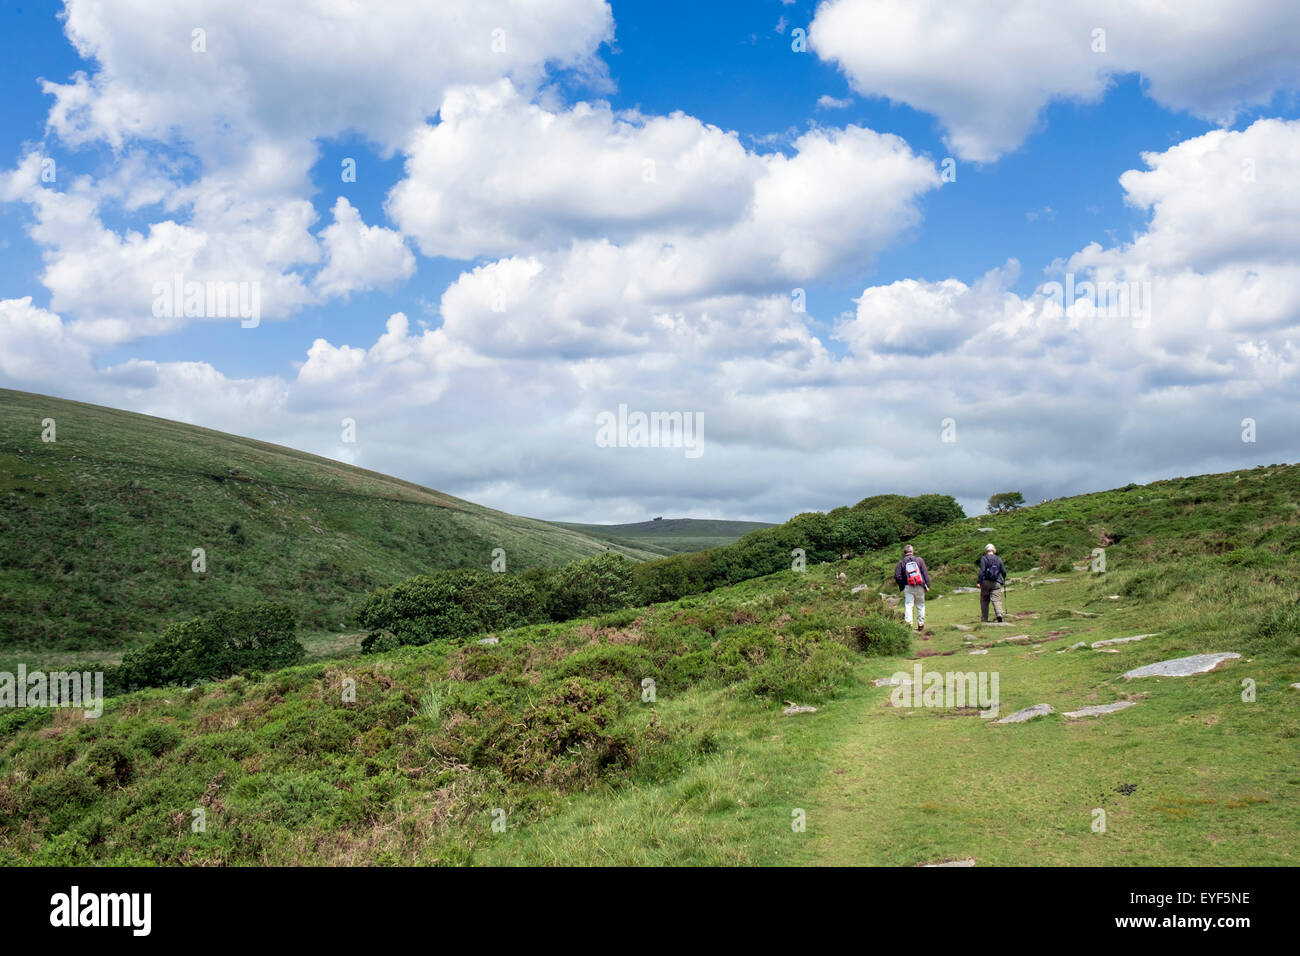 Walkers on the footpath from Two Bridges to Wistman's Wood, Dartmoor National Park, Devon, England, UK - Stock Image